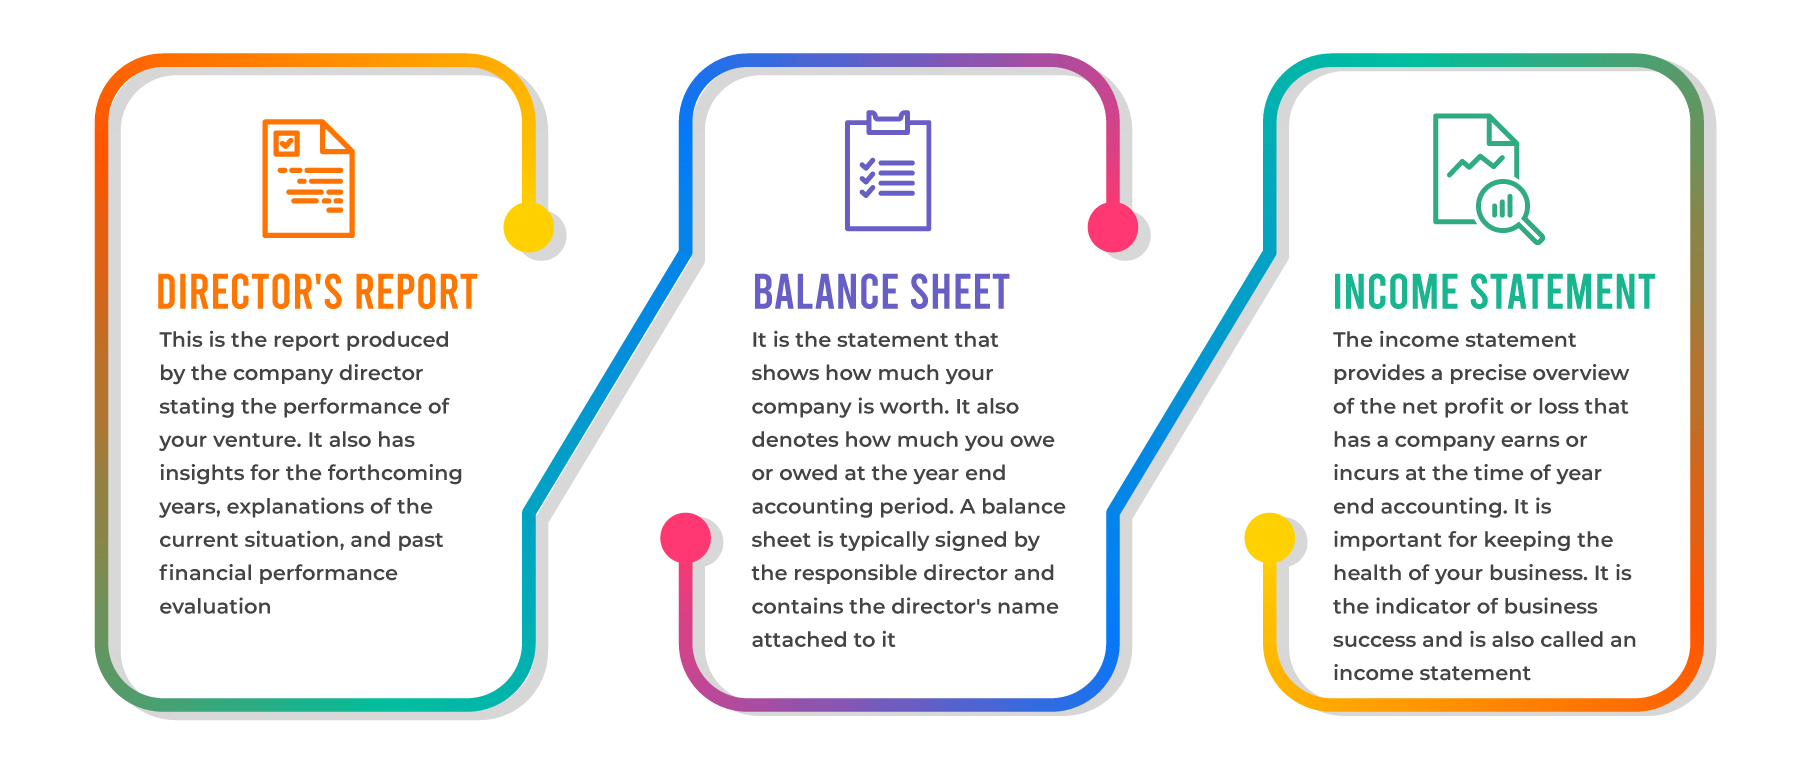 year-end-accounting-checklist-statutory-accounts-details